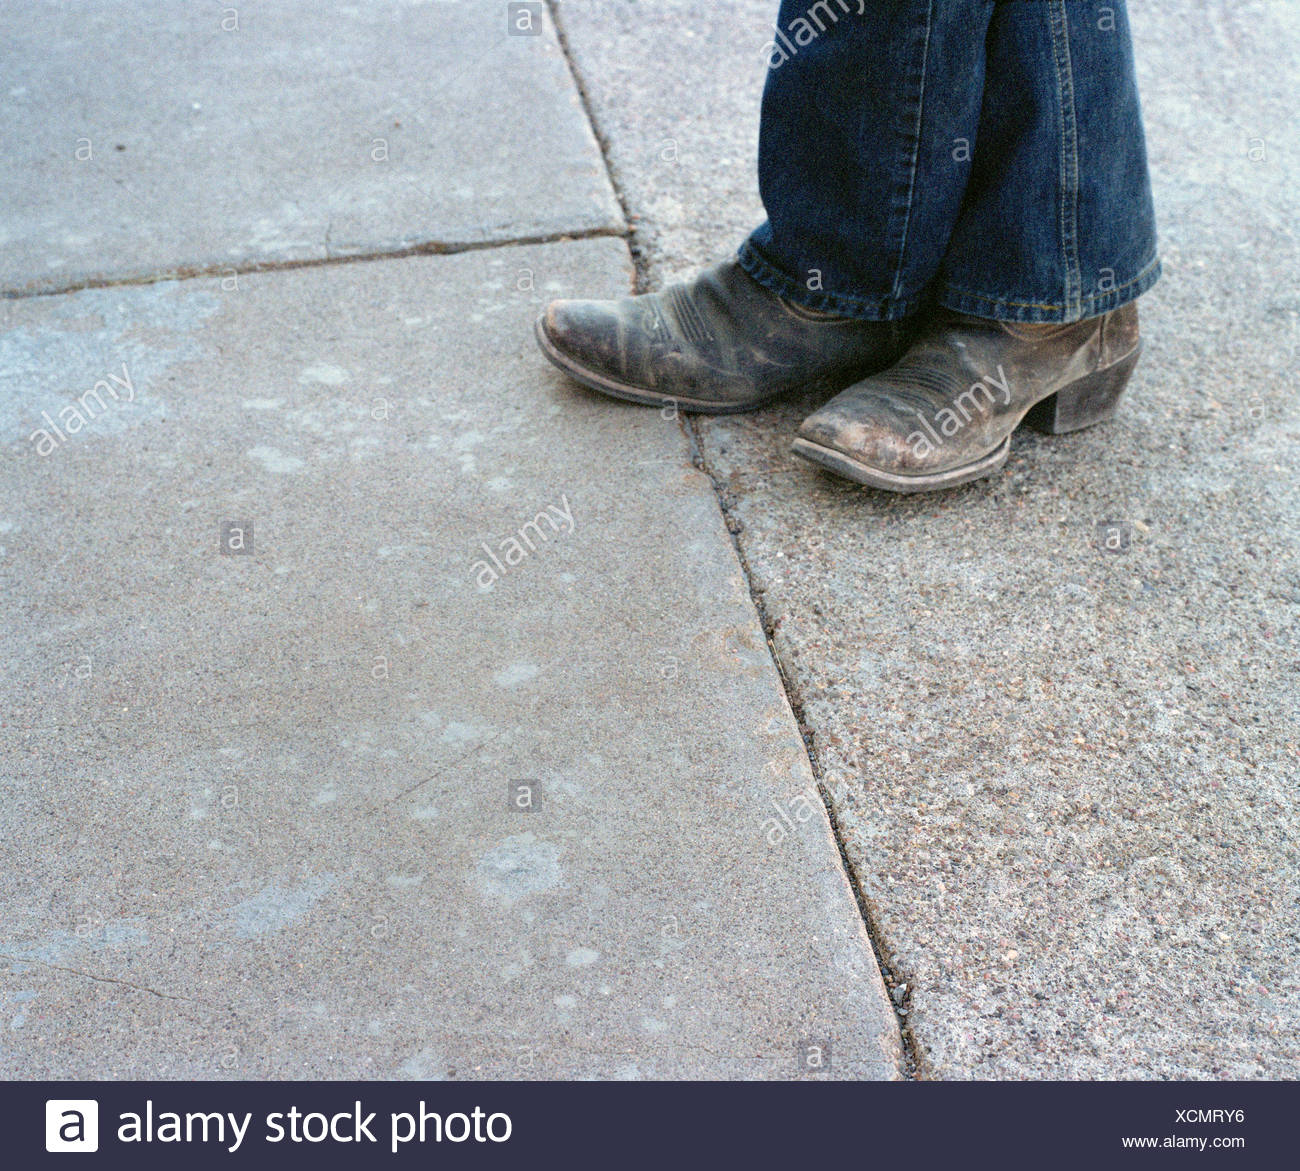 Close up of weathered cowboy boots and denim jeans - Stock Image